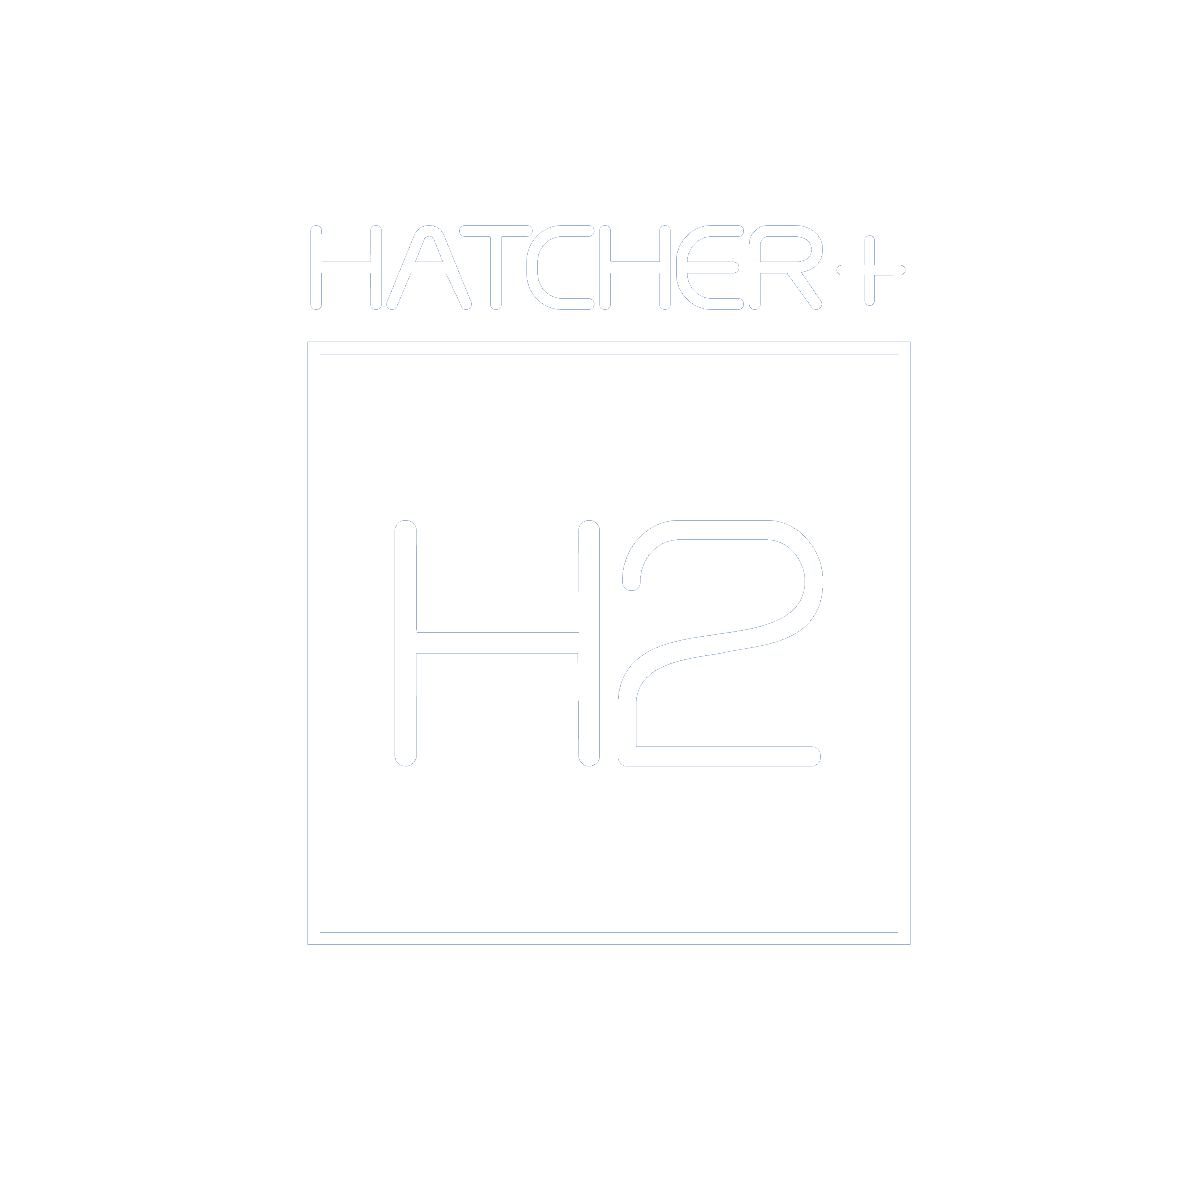 Hatcher+ logo transparency